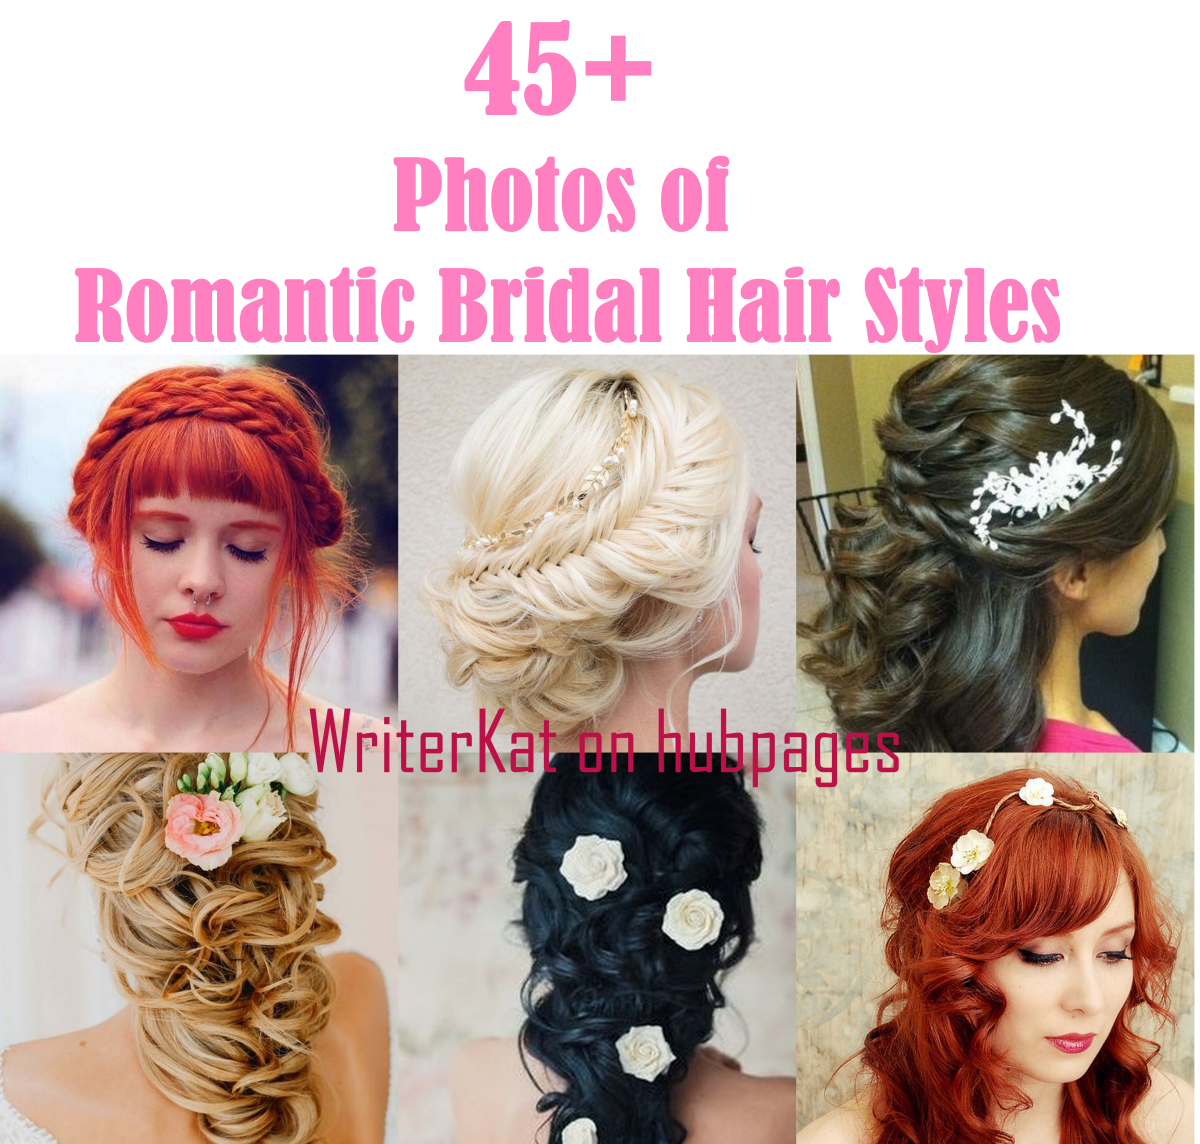 45+ Photos of Romantic Bridal Hair Styles